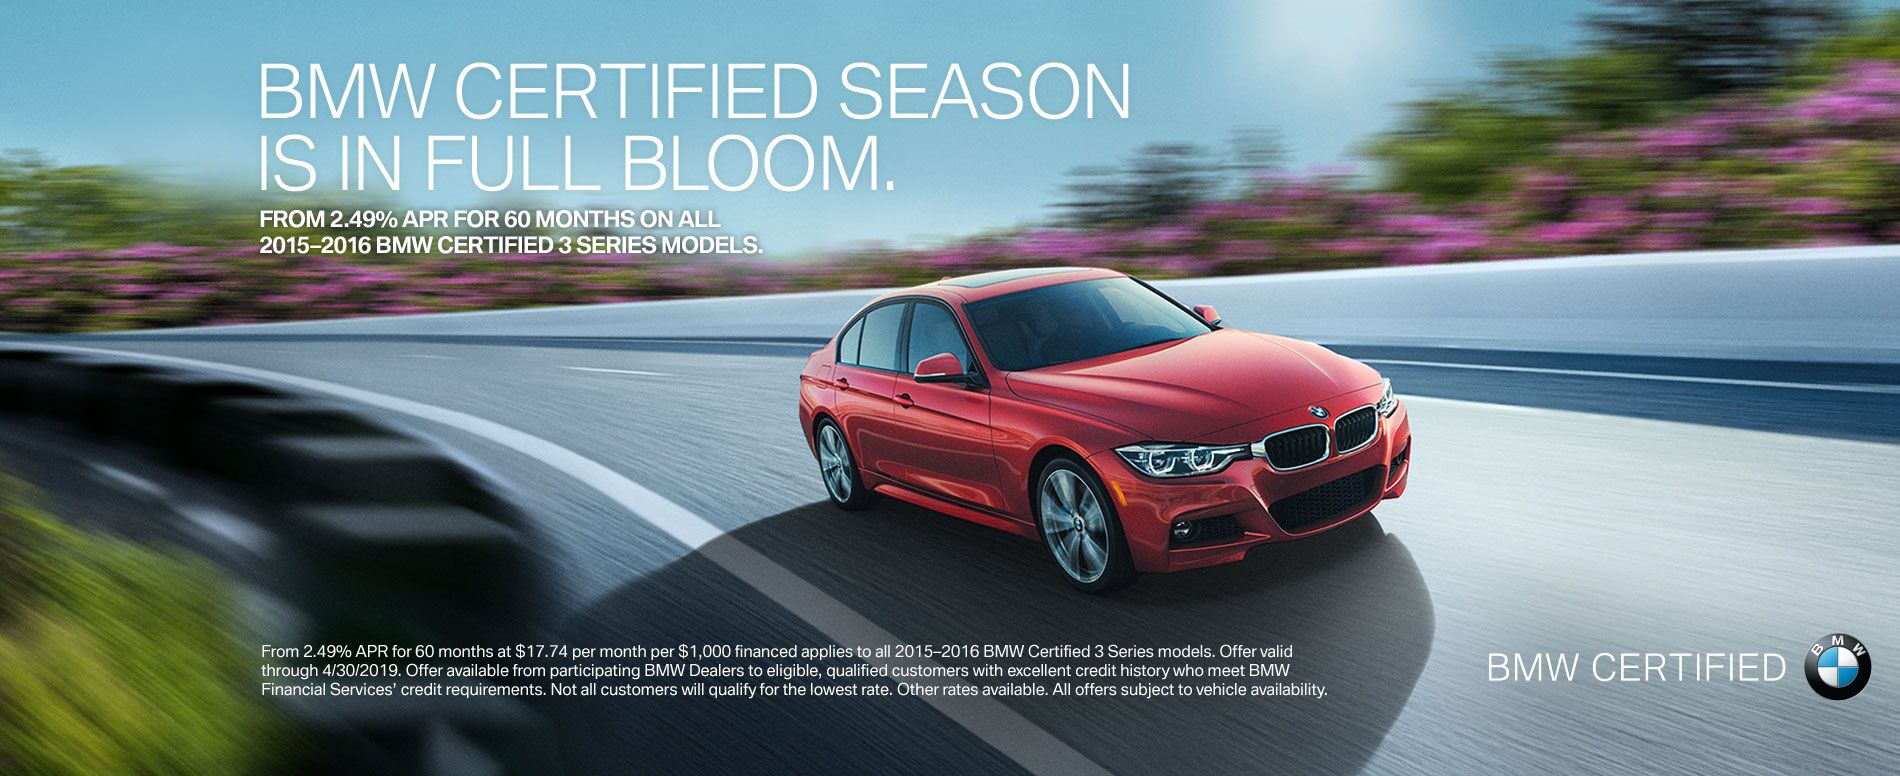 BMW Certified in Full Bloom